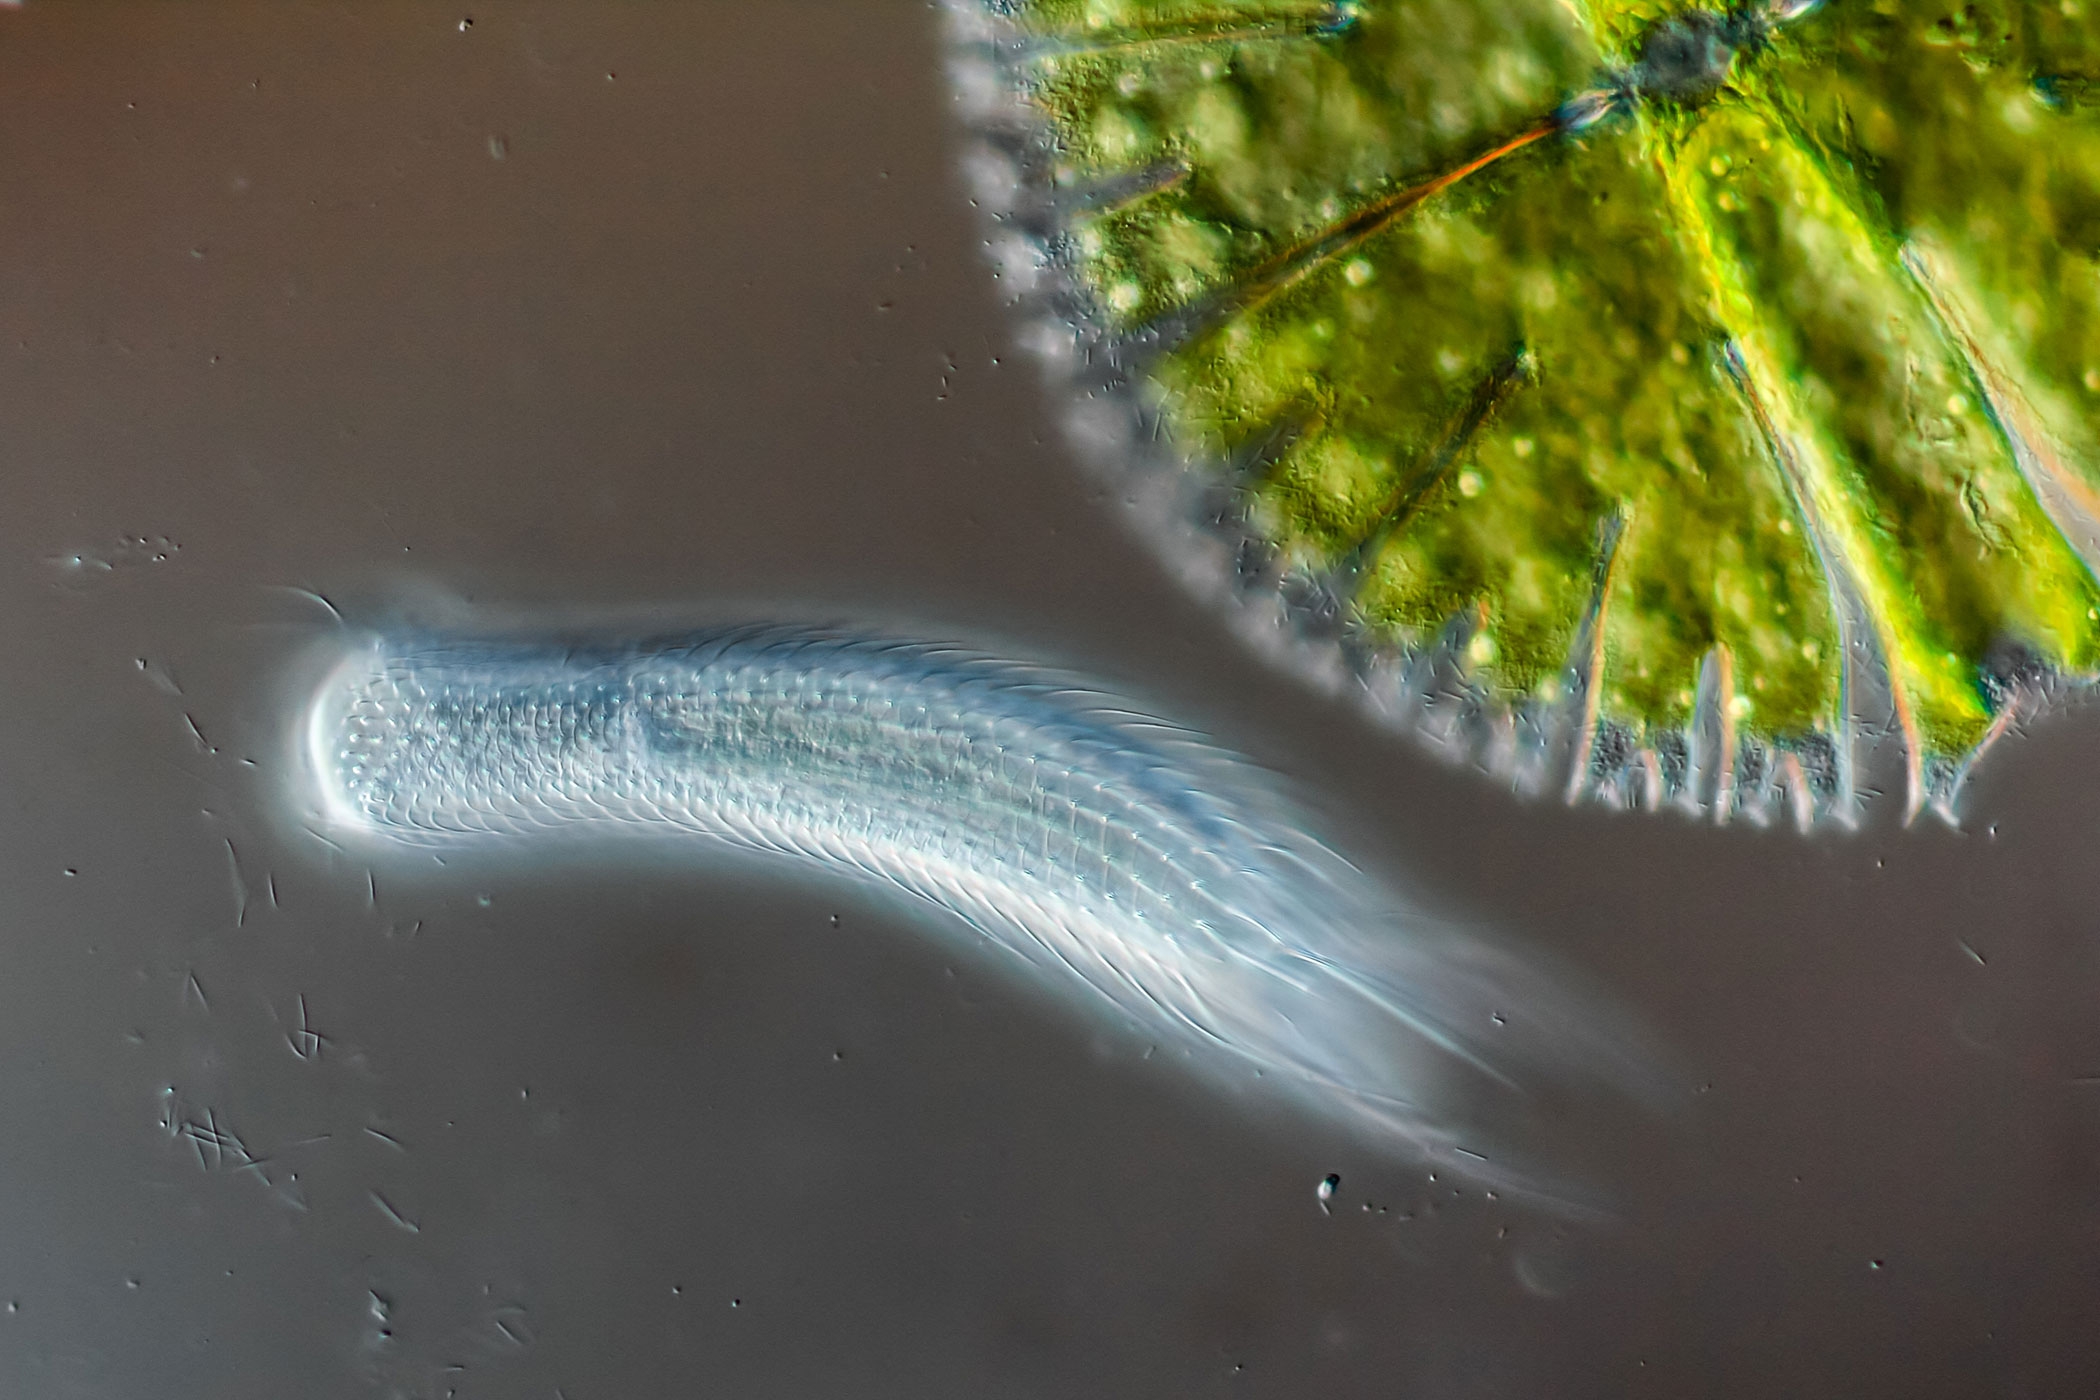 Hairyback worm (Chaetonotus sp.) and algae (Micrasterias sp.) at 400x magnification.